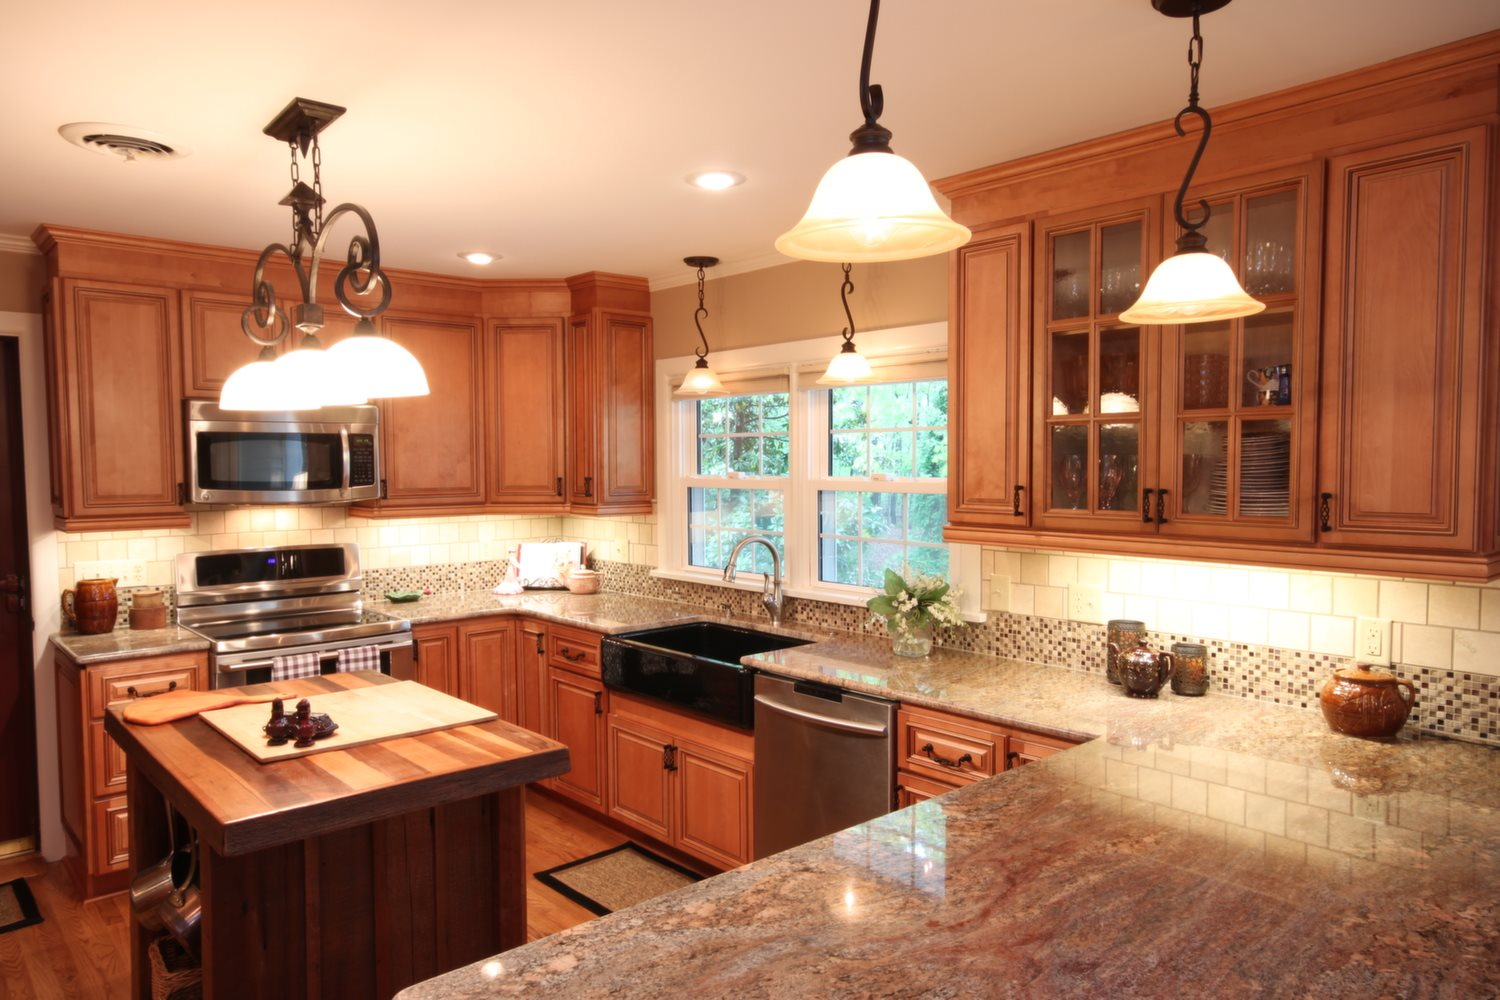 cooke_kitchen_2.jpg